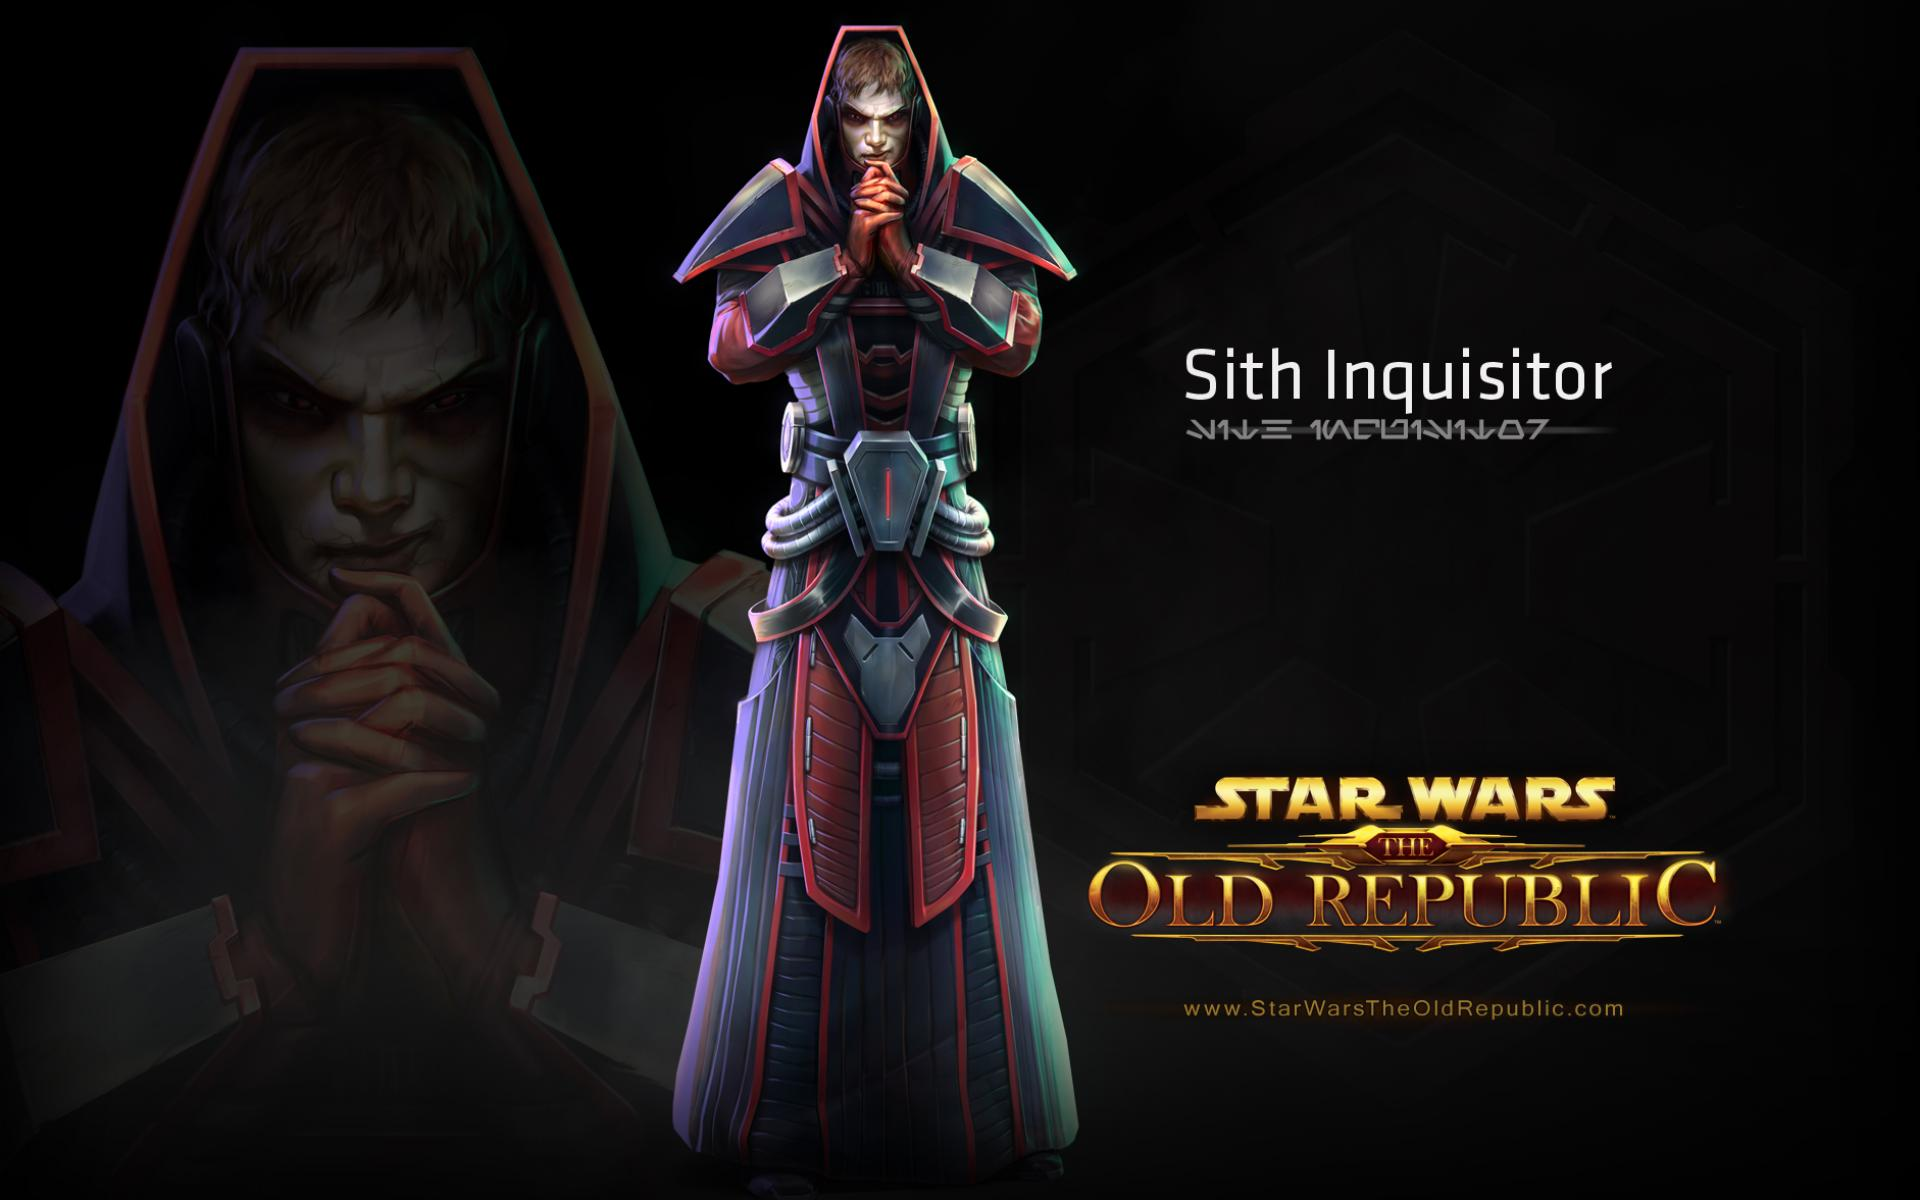 Обои Star Wars Old Republic - Sith Inquisitir, из игры 1920 1920x1200